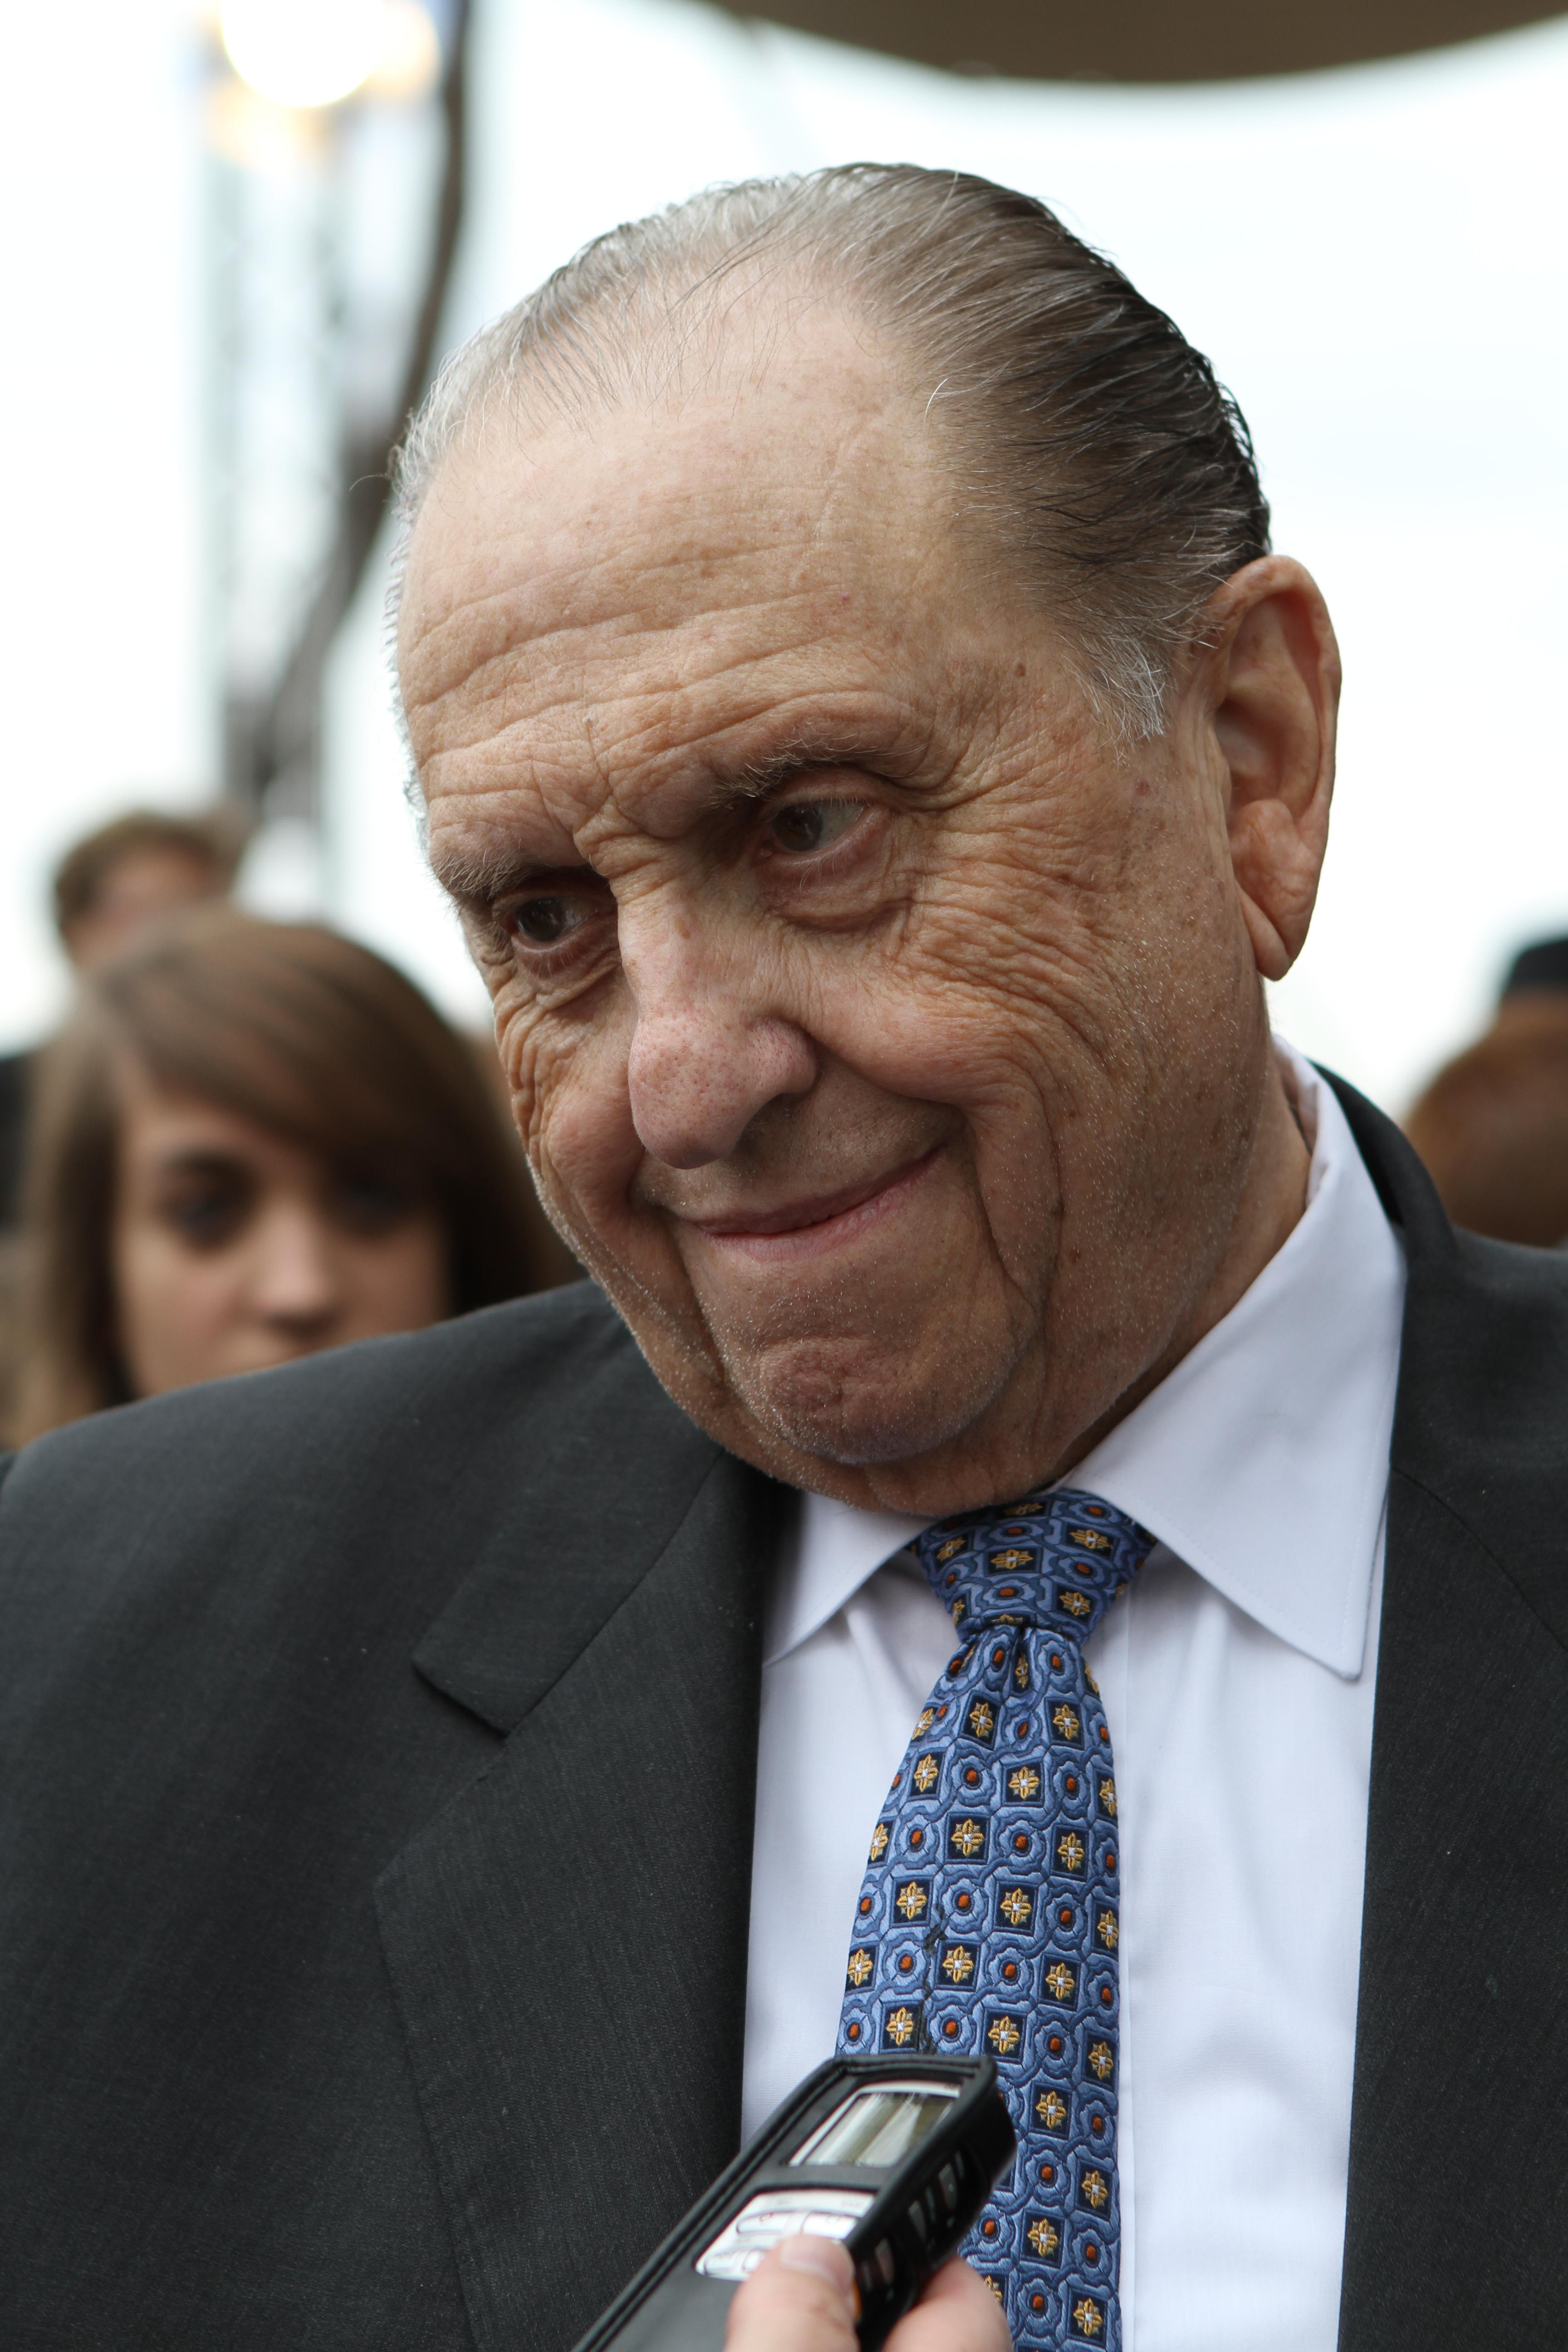 President Thomas S. Monson following Rome Italy Temple groundbreaking on October 23, 2010. (Photo: MormonNewsroom.org)<p></p>